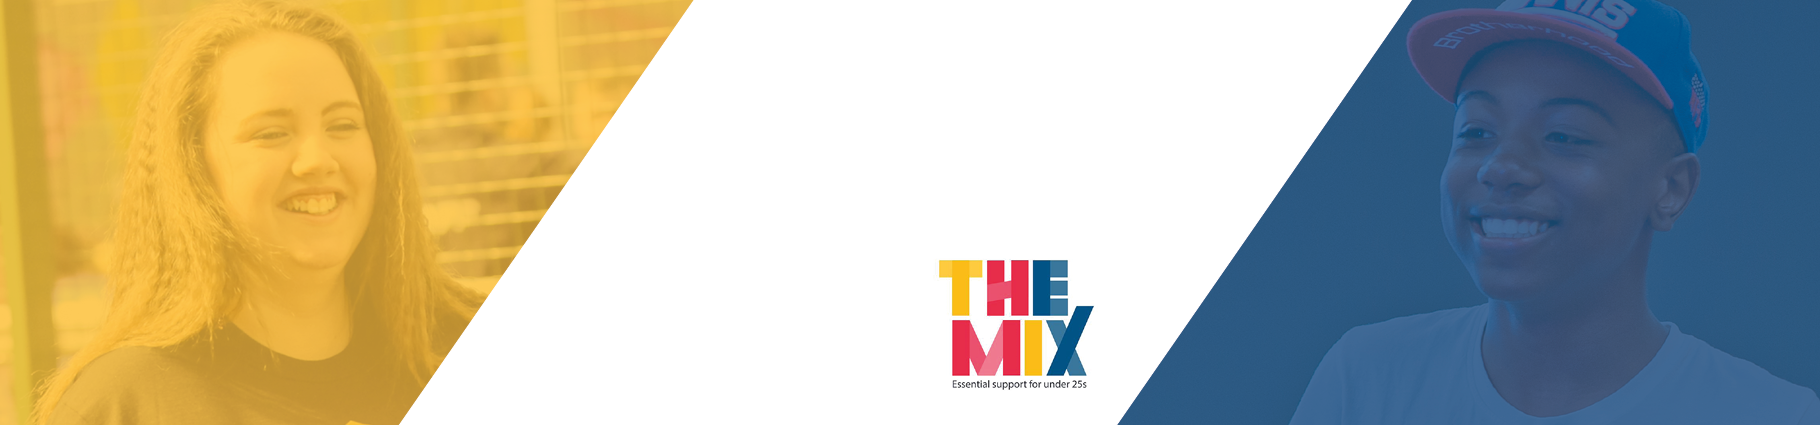 THE MIX HOMEPAGE BANNER2